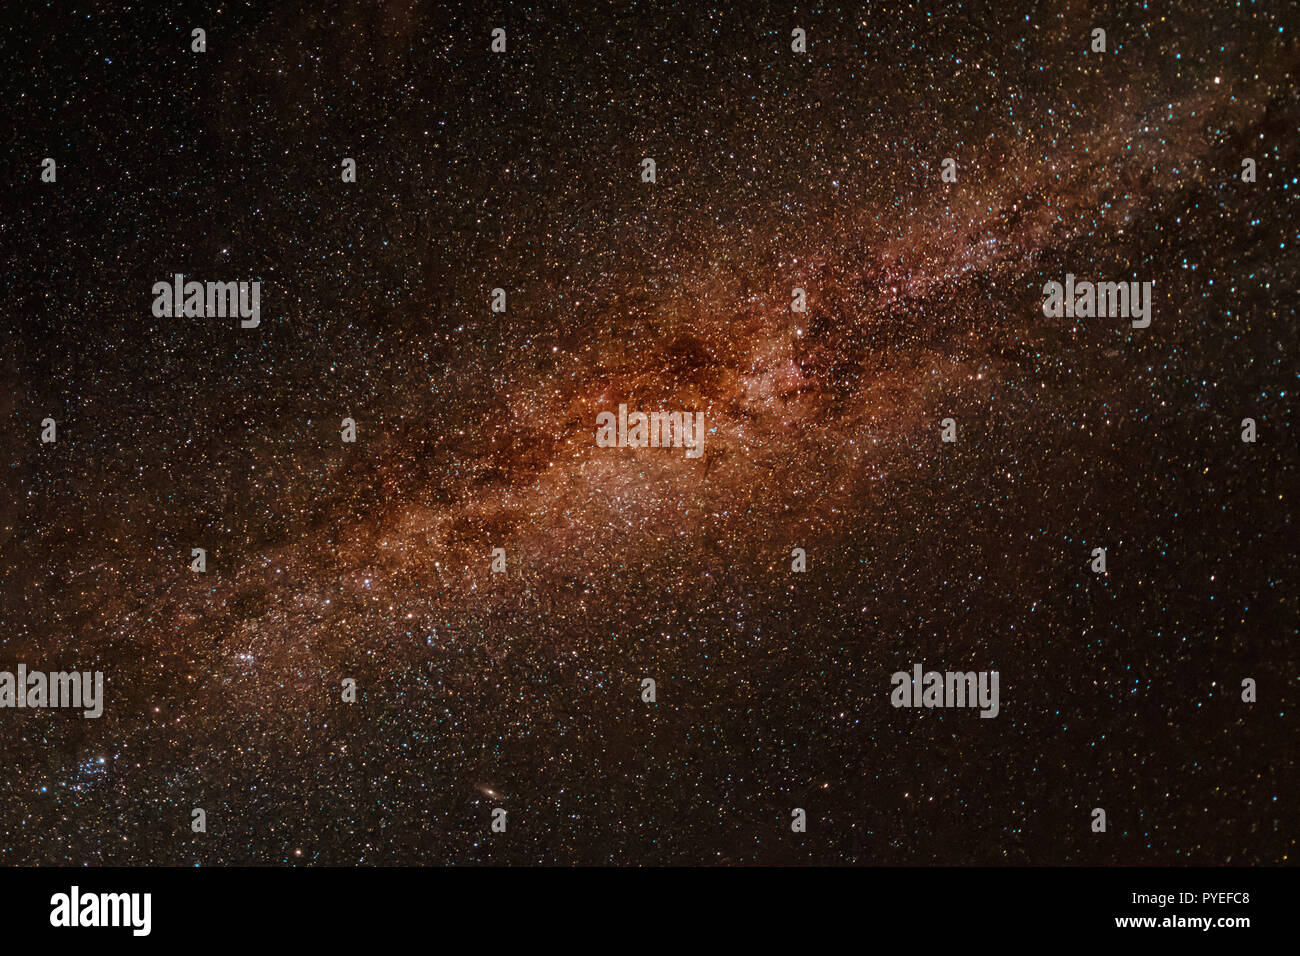 Milky way exposed in great detail and in brown reddish color, looks like space - Stock Image